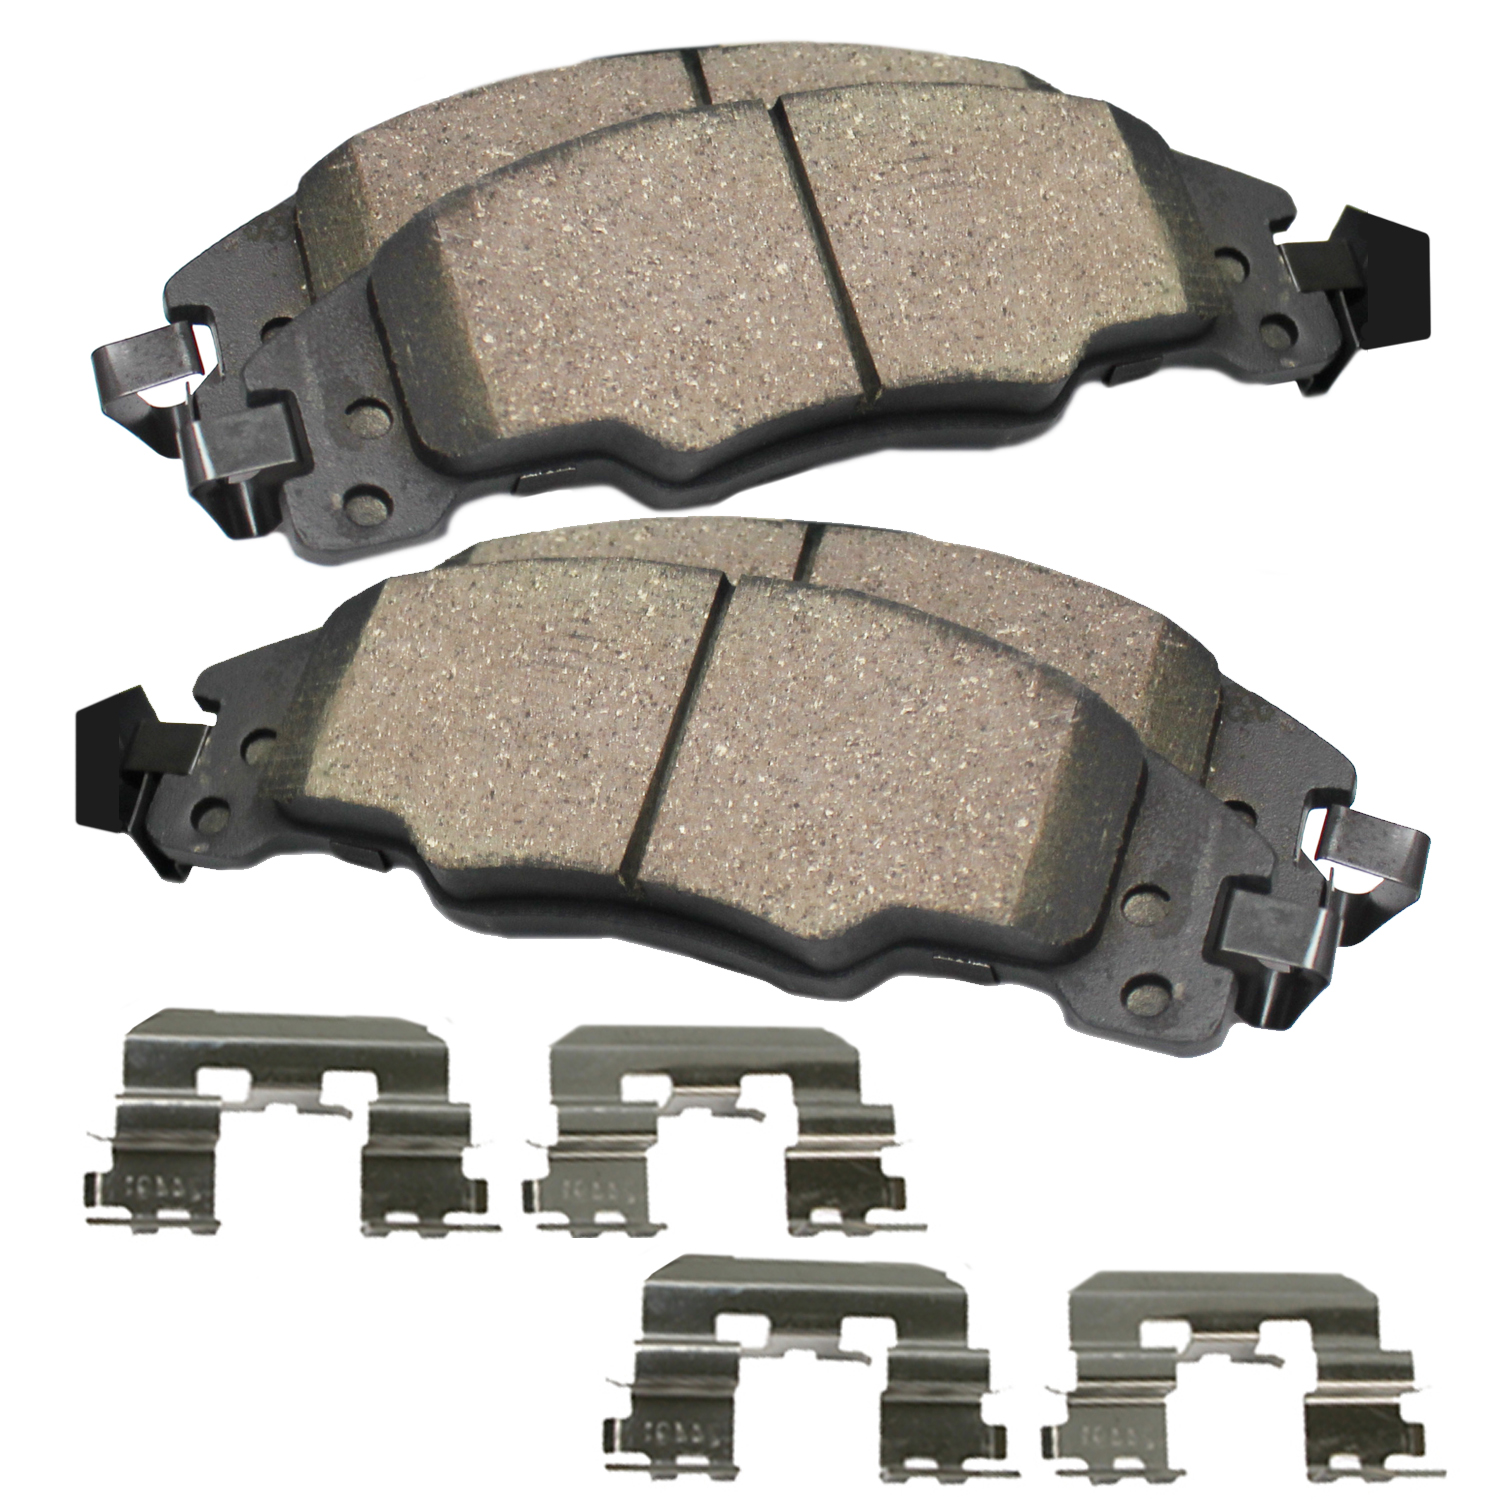 Rear Ceramic Brake Pads w/Hardware Kit for 2012-2017 Audi A6/ A6 Quattro/ A7 Quattro - [11-17 A8 Quattro] - 13-15 RS5 - [16-17 RS7 Base] - 14-15 RS7 - [13-17 S6/S7/S8]